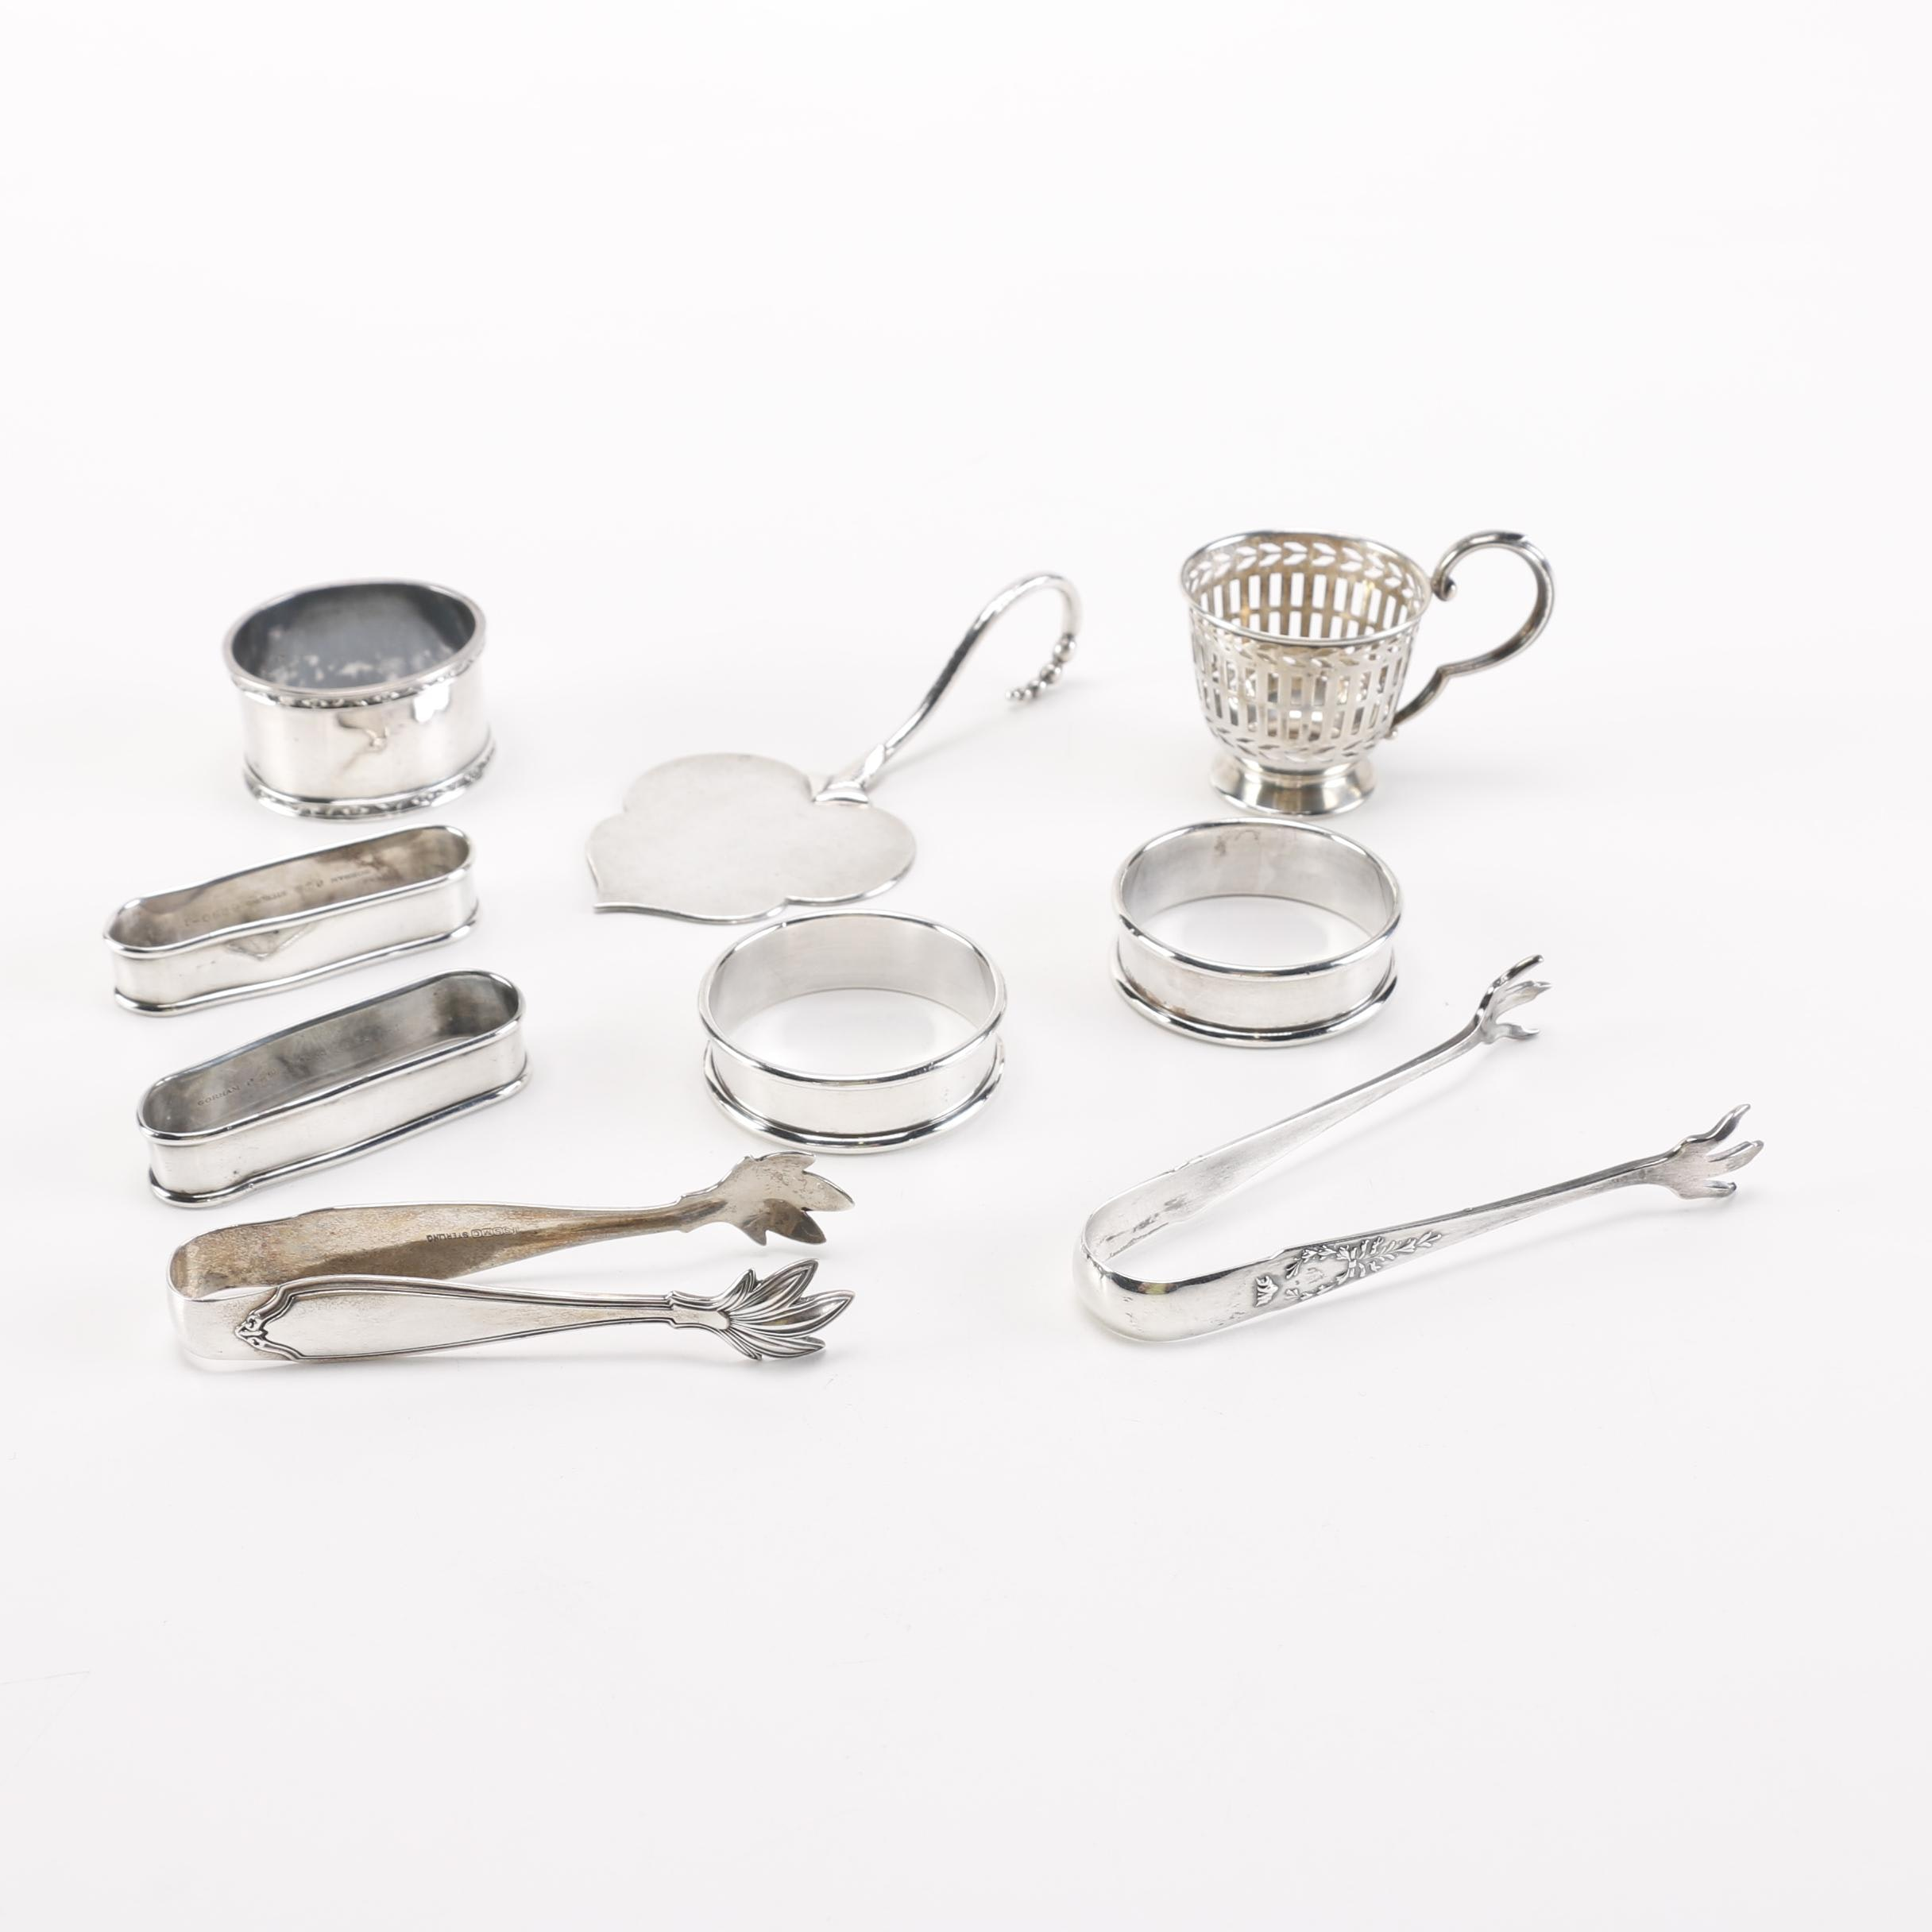 Assorted Sterling Silver Tableware Accessories Featuring Gorham